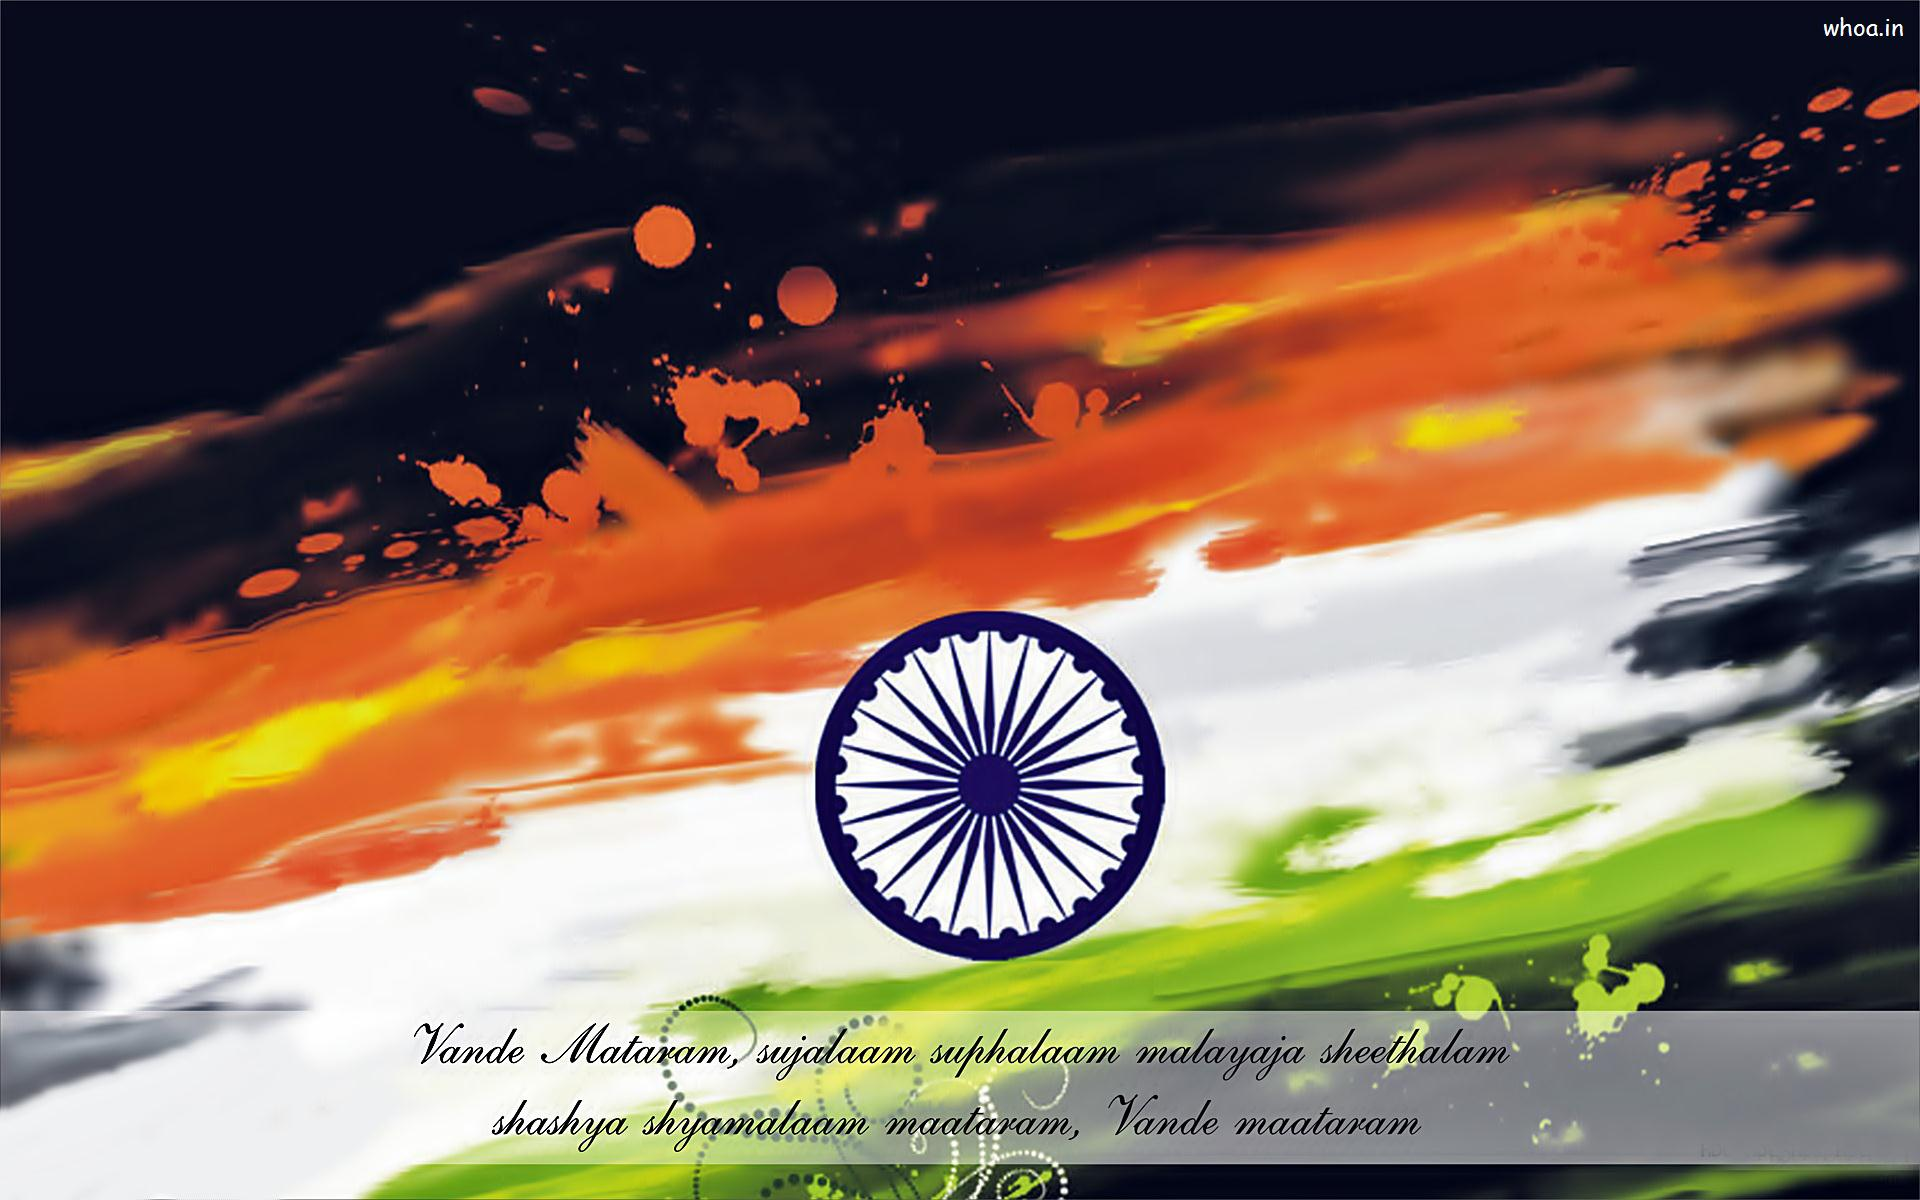 Indian Flag Hd Wallpaper: Indian-flag-vande-mataram-quote-hd-wallpaper